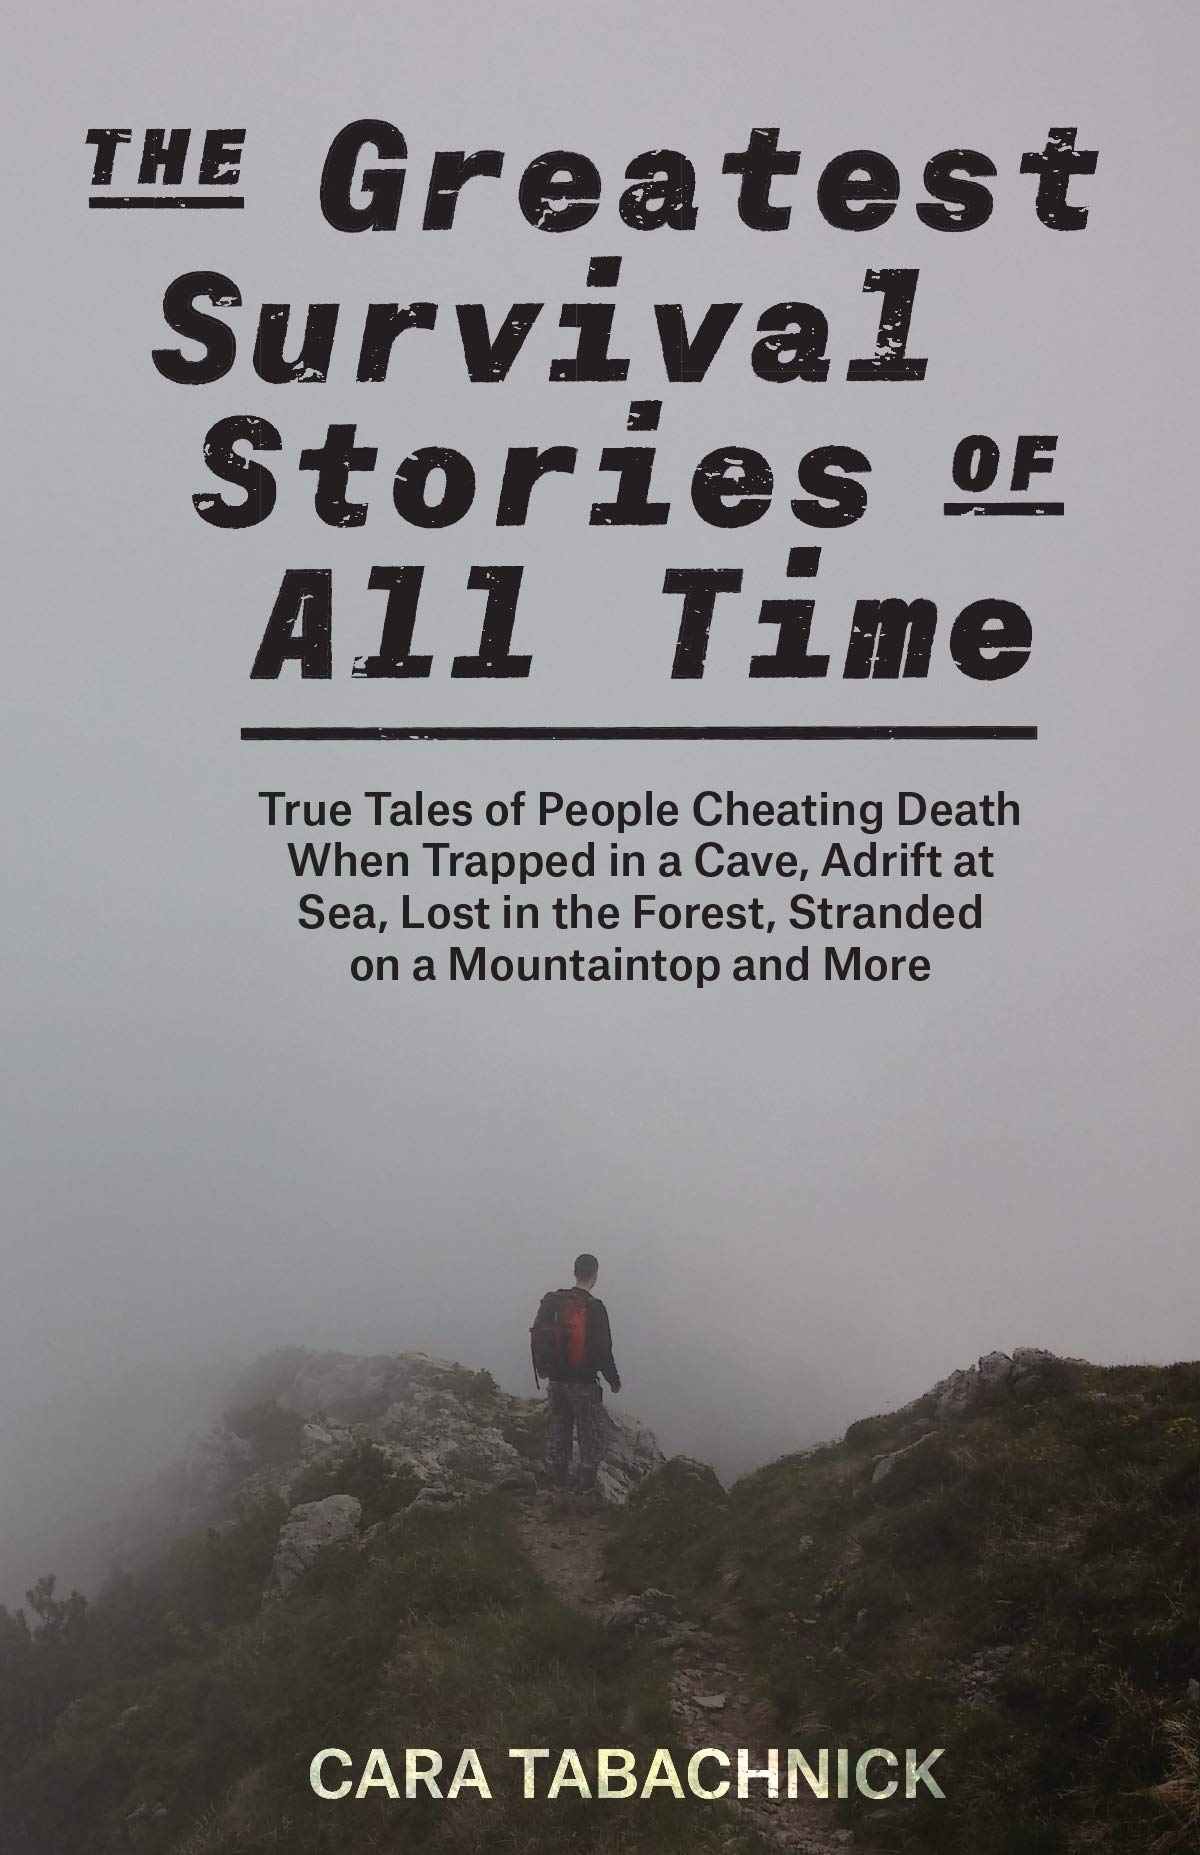 Pre-order on Amazon - AVAILABLE JULY 23, 2019. PUBLISHER: ULYSSES PRESS, 2019The Greatest Survival Stories of All Time: True Tales of People Cheating Death When Trapped in a Cave, Adrift at Sea, Lost in the Forest, Stranded on a Mountaintop and More.